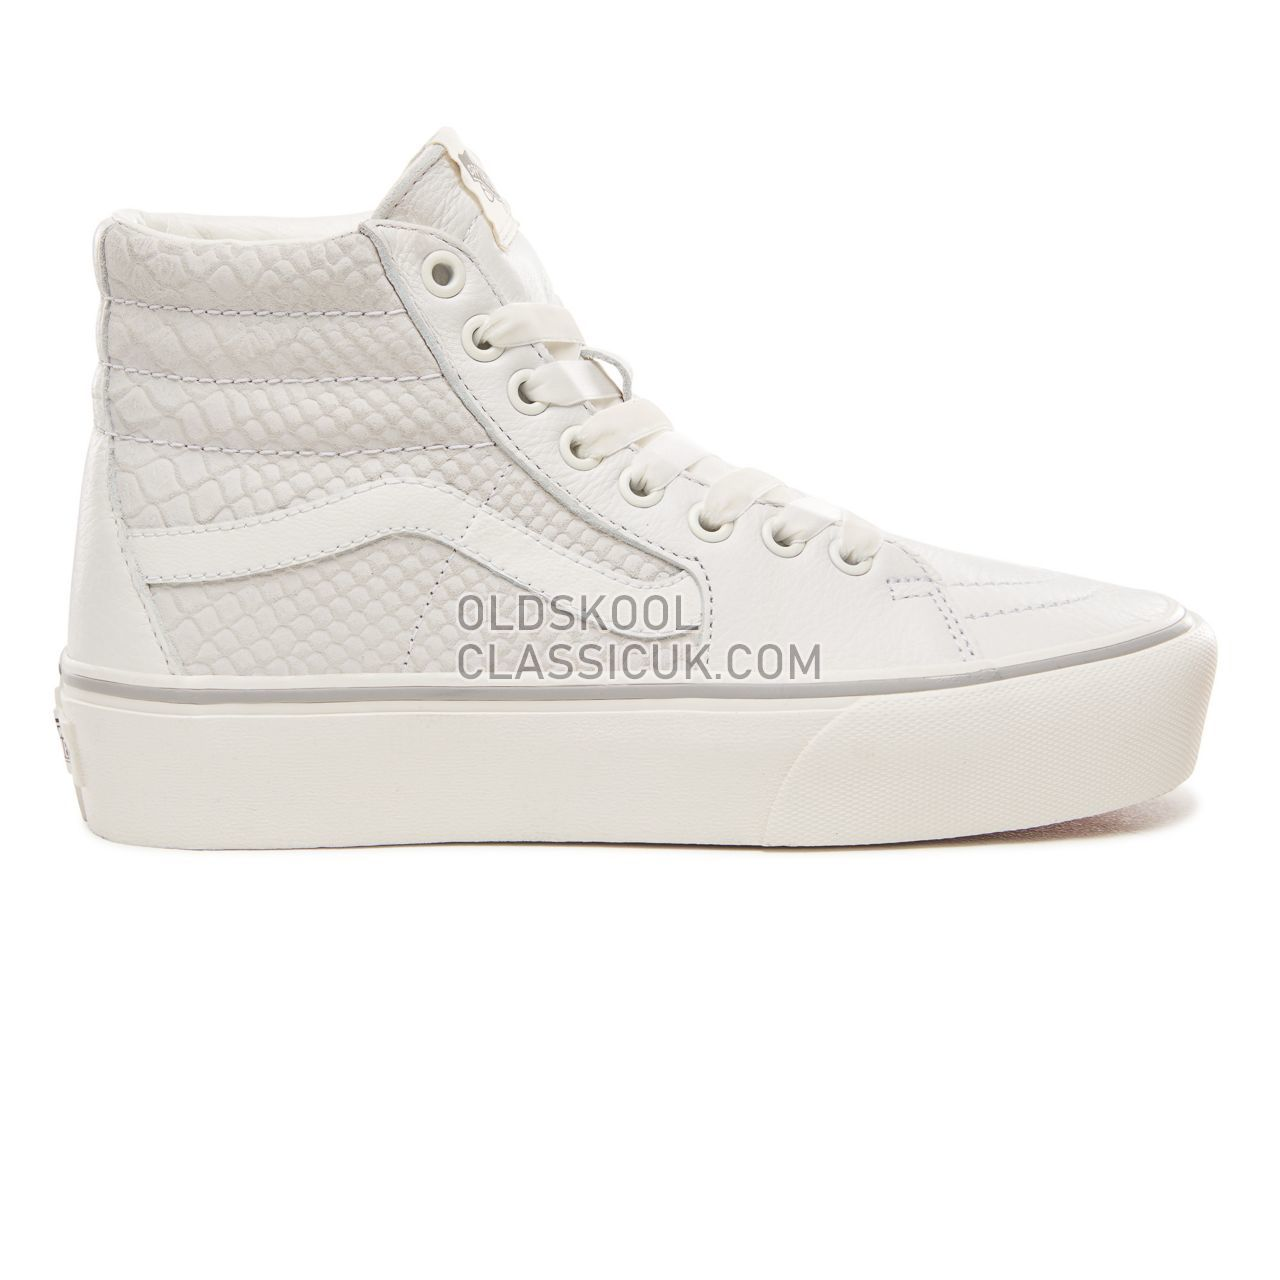 Vans Leather Sk8-Hi Platform 2.0 Sneakers Womens (Leather) Snake/White VN0A3TKNUPK Shoes